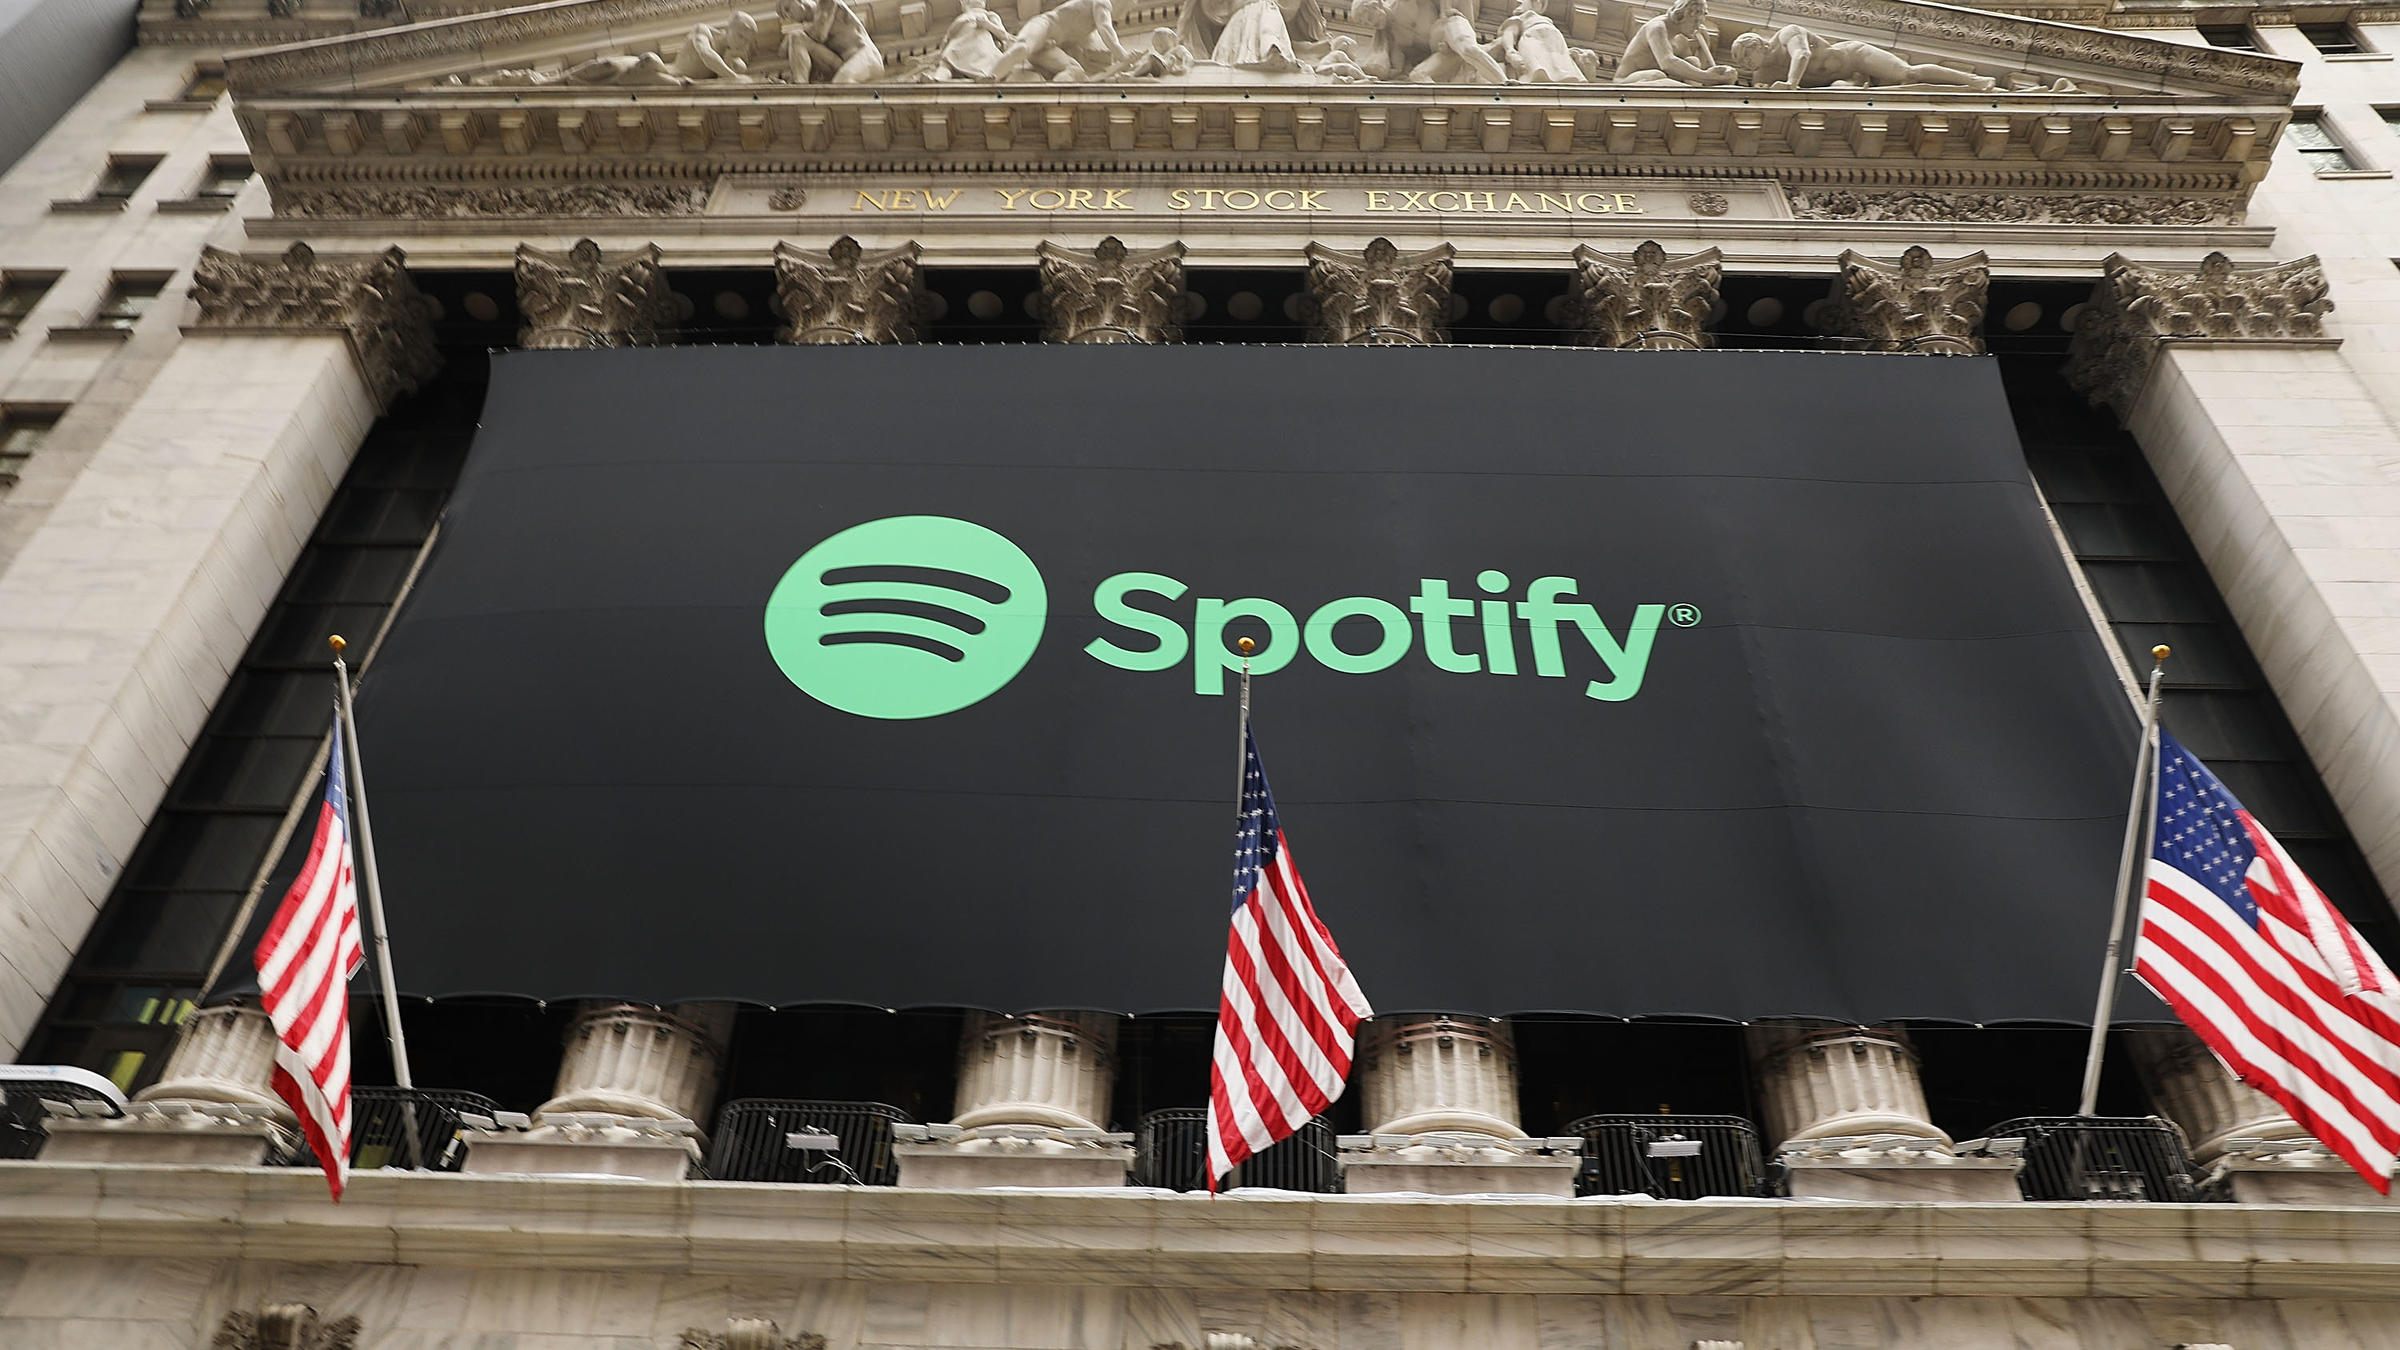 Spotify had a wimpy market listing, and that's okay